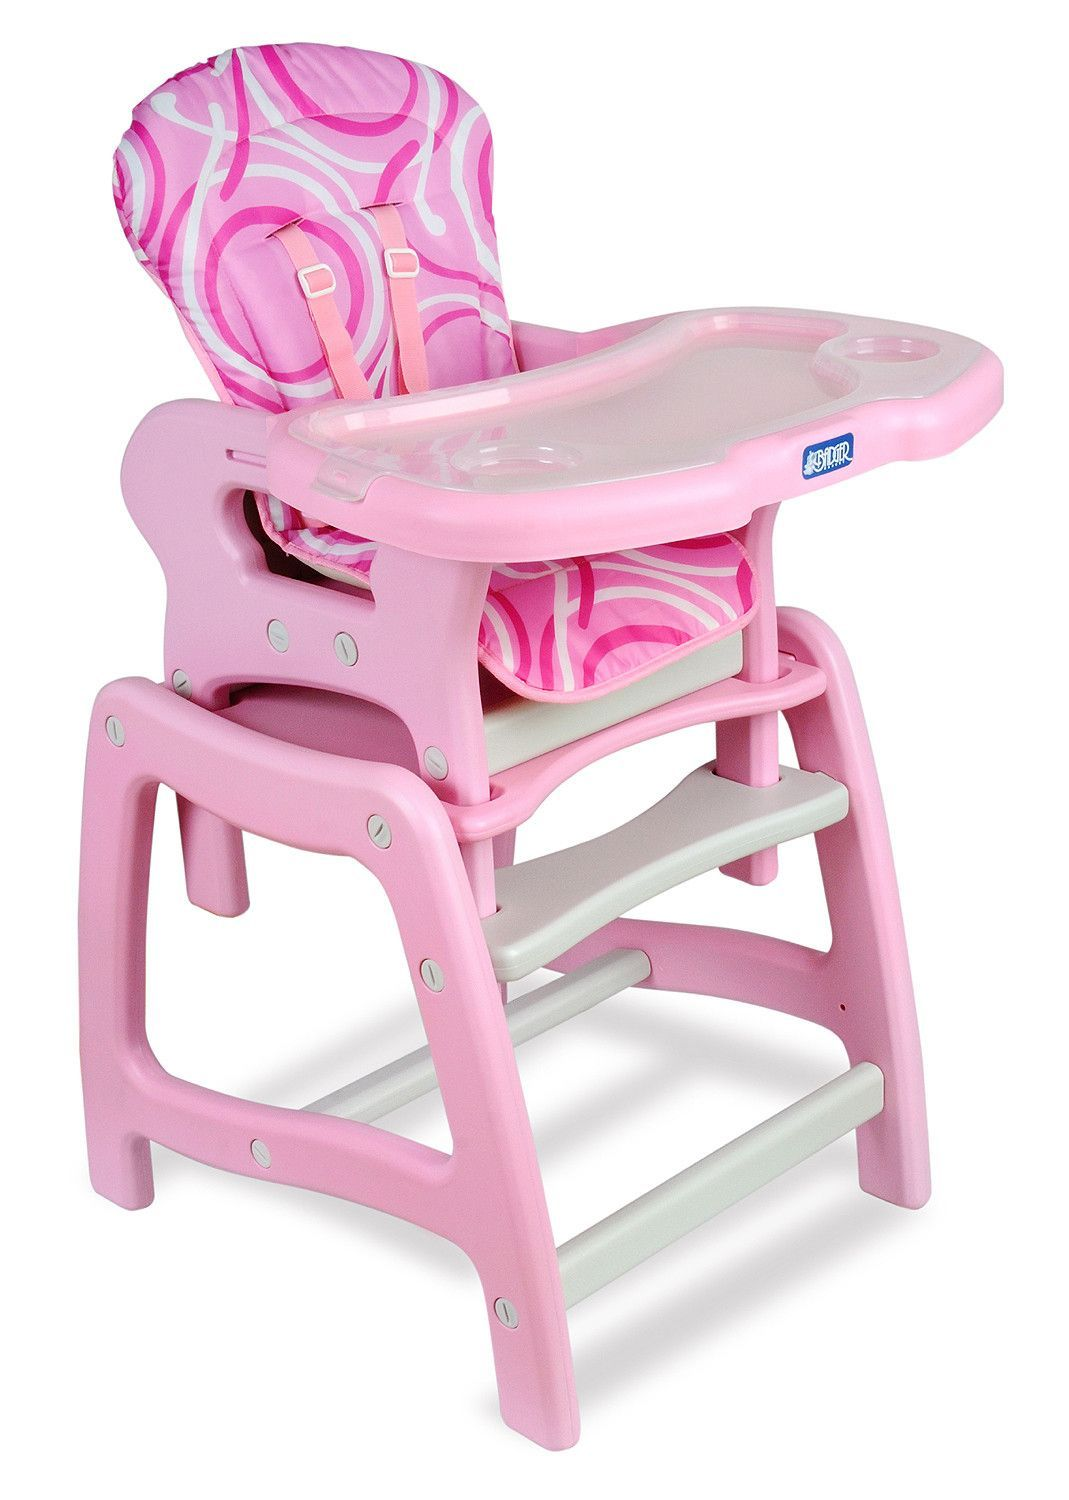 Envee baby high chair with playtable conversion pink and